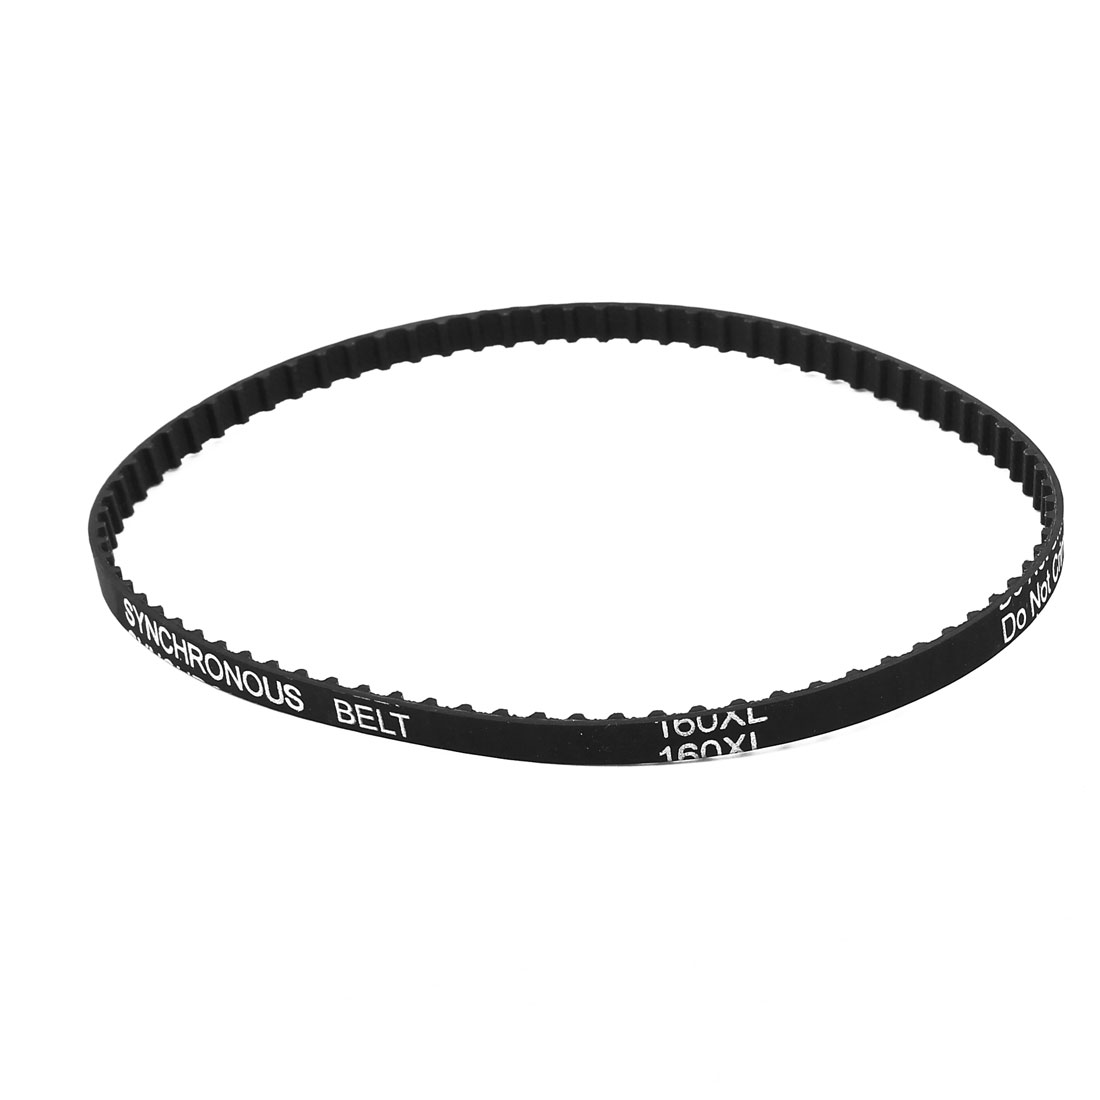 160XL 025 80 Teeth 5.08mm Pitch 6.4mm Width Industrial Timing Belt 406.4mm